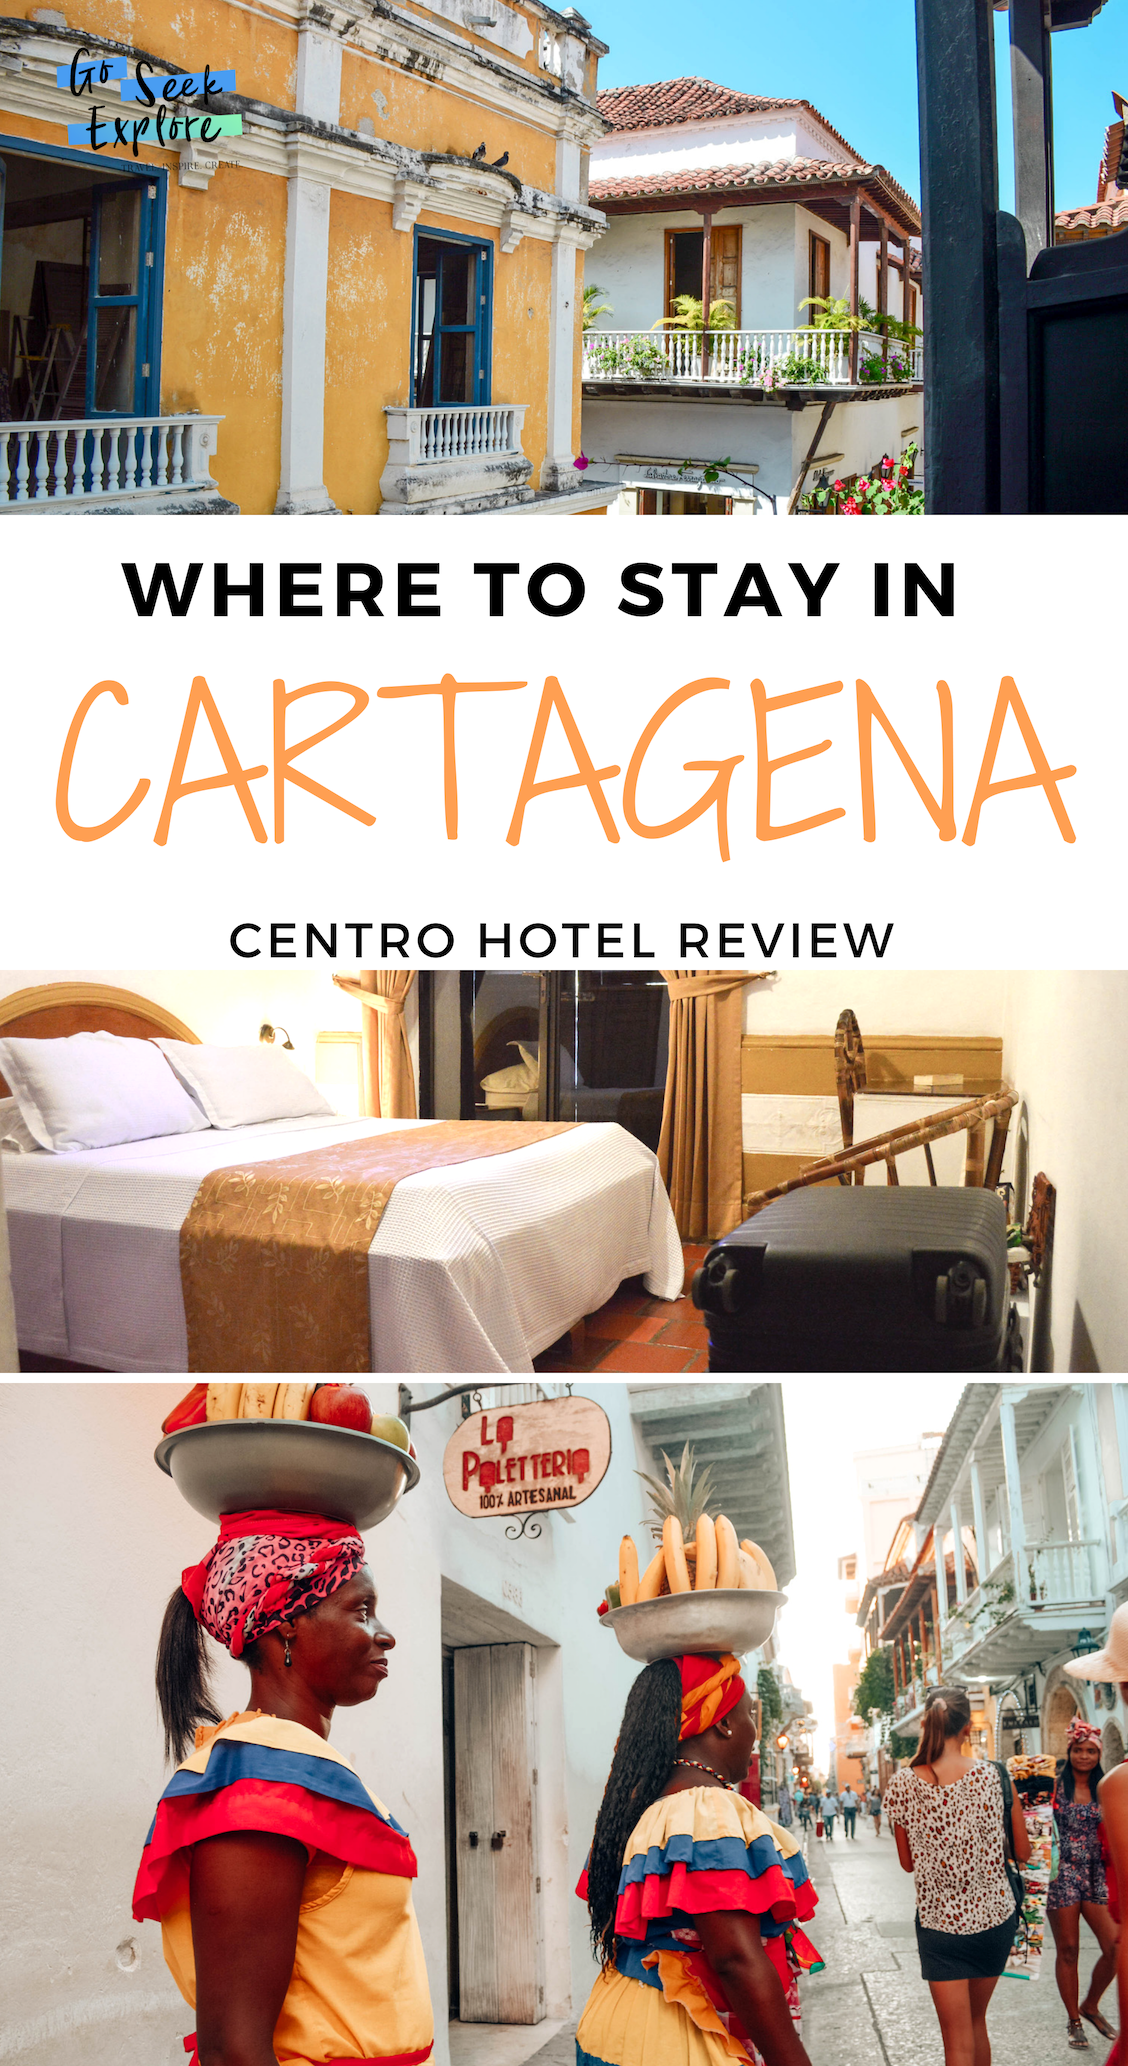 Where to stay in Cartagena, Colombia - Cartagena hotel review of the best place to stay - goseekexplore.com / where-stay-cartagena-centro-hotel #cartagena #colombia